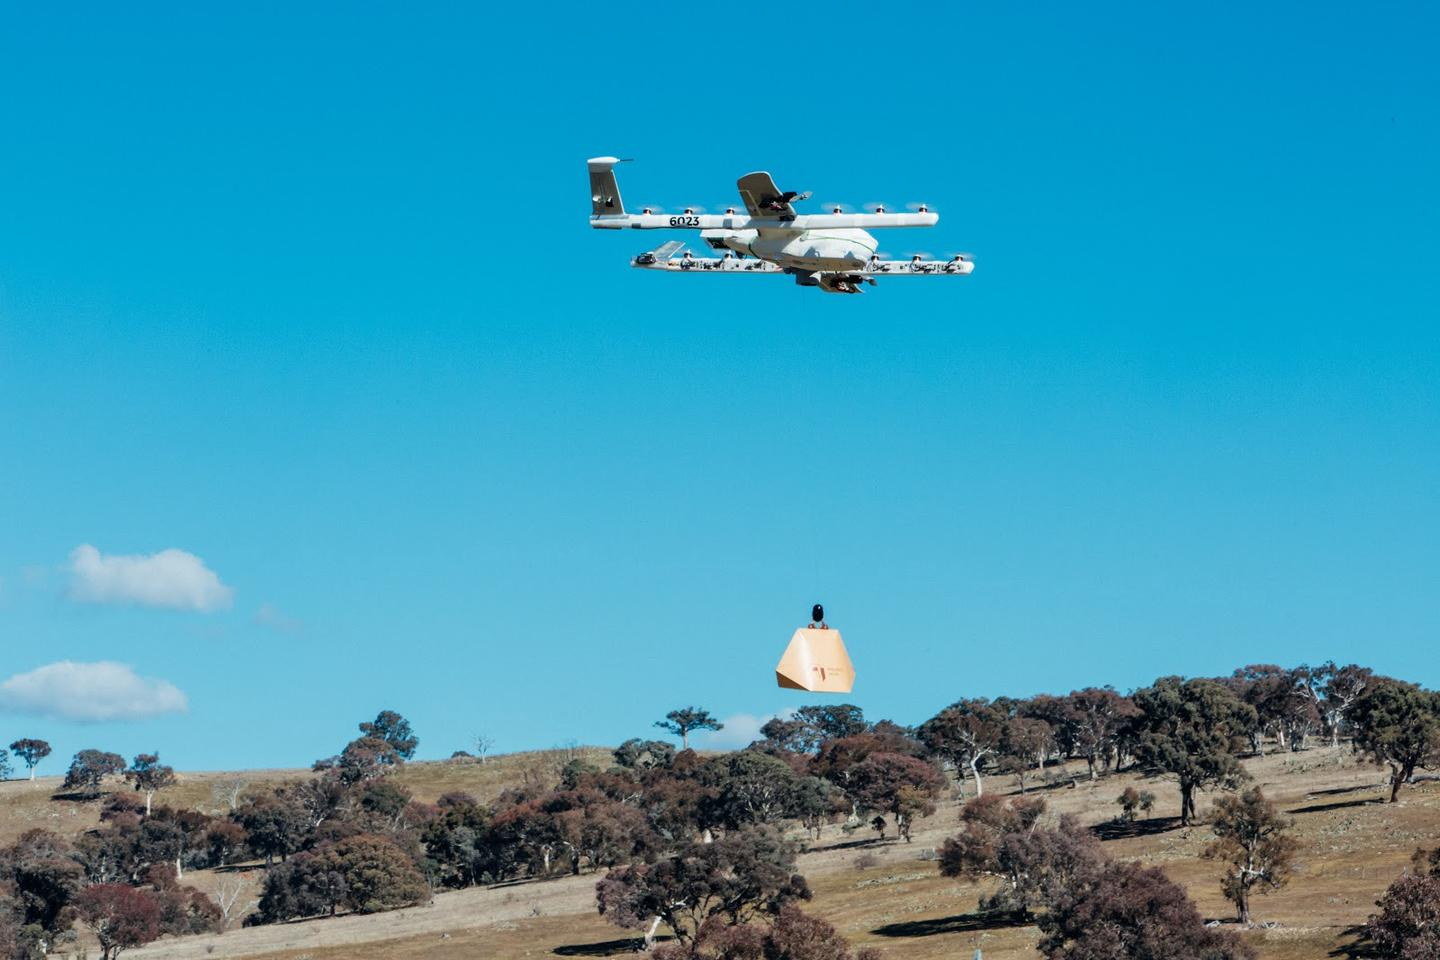 For folks living on the outskirts of the Australian Capital Territory in the country's southeast, a forgotten bottle of milk or carton of eggs can mean a 40-minute round trip to the store. Delivery drones may be part of a solution